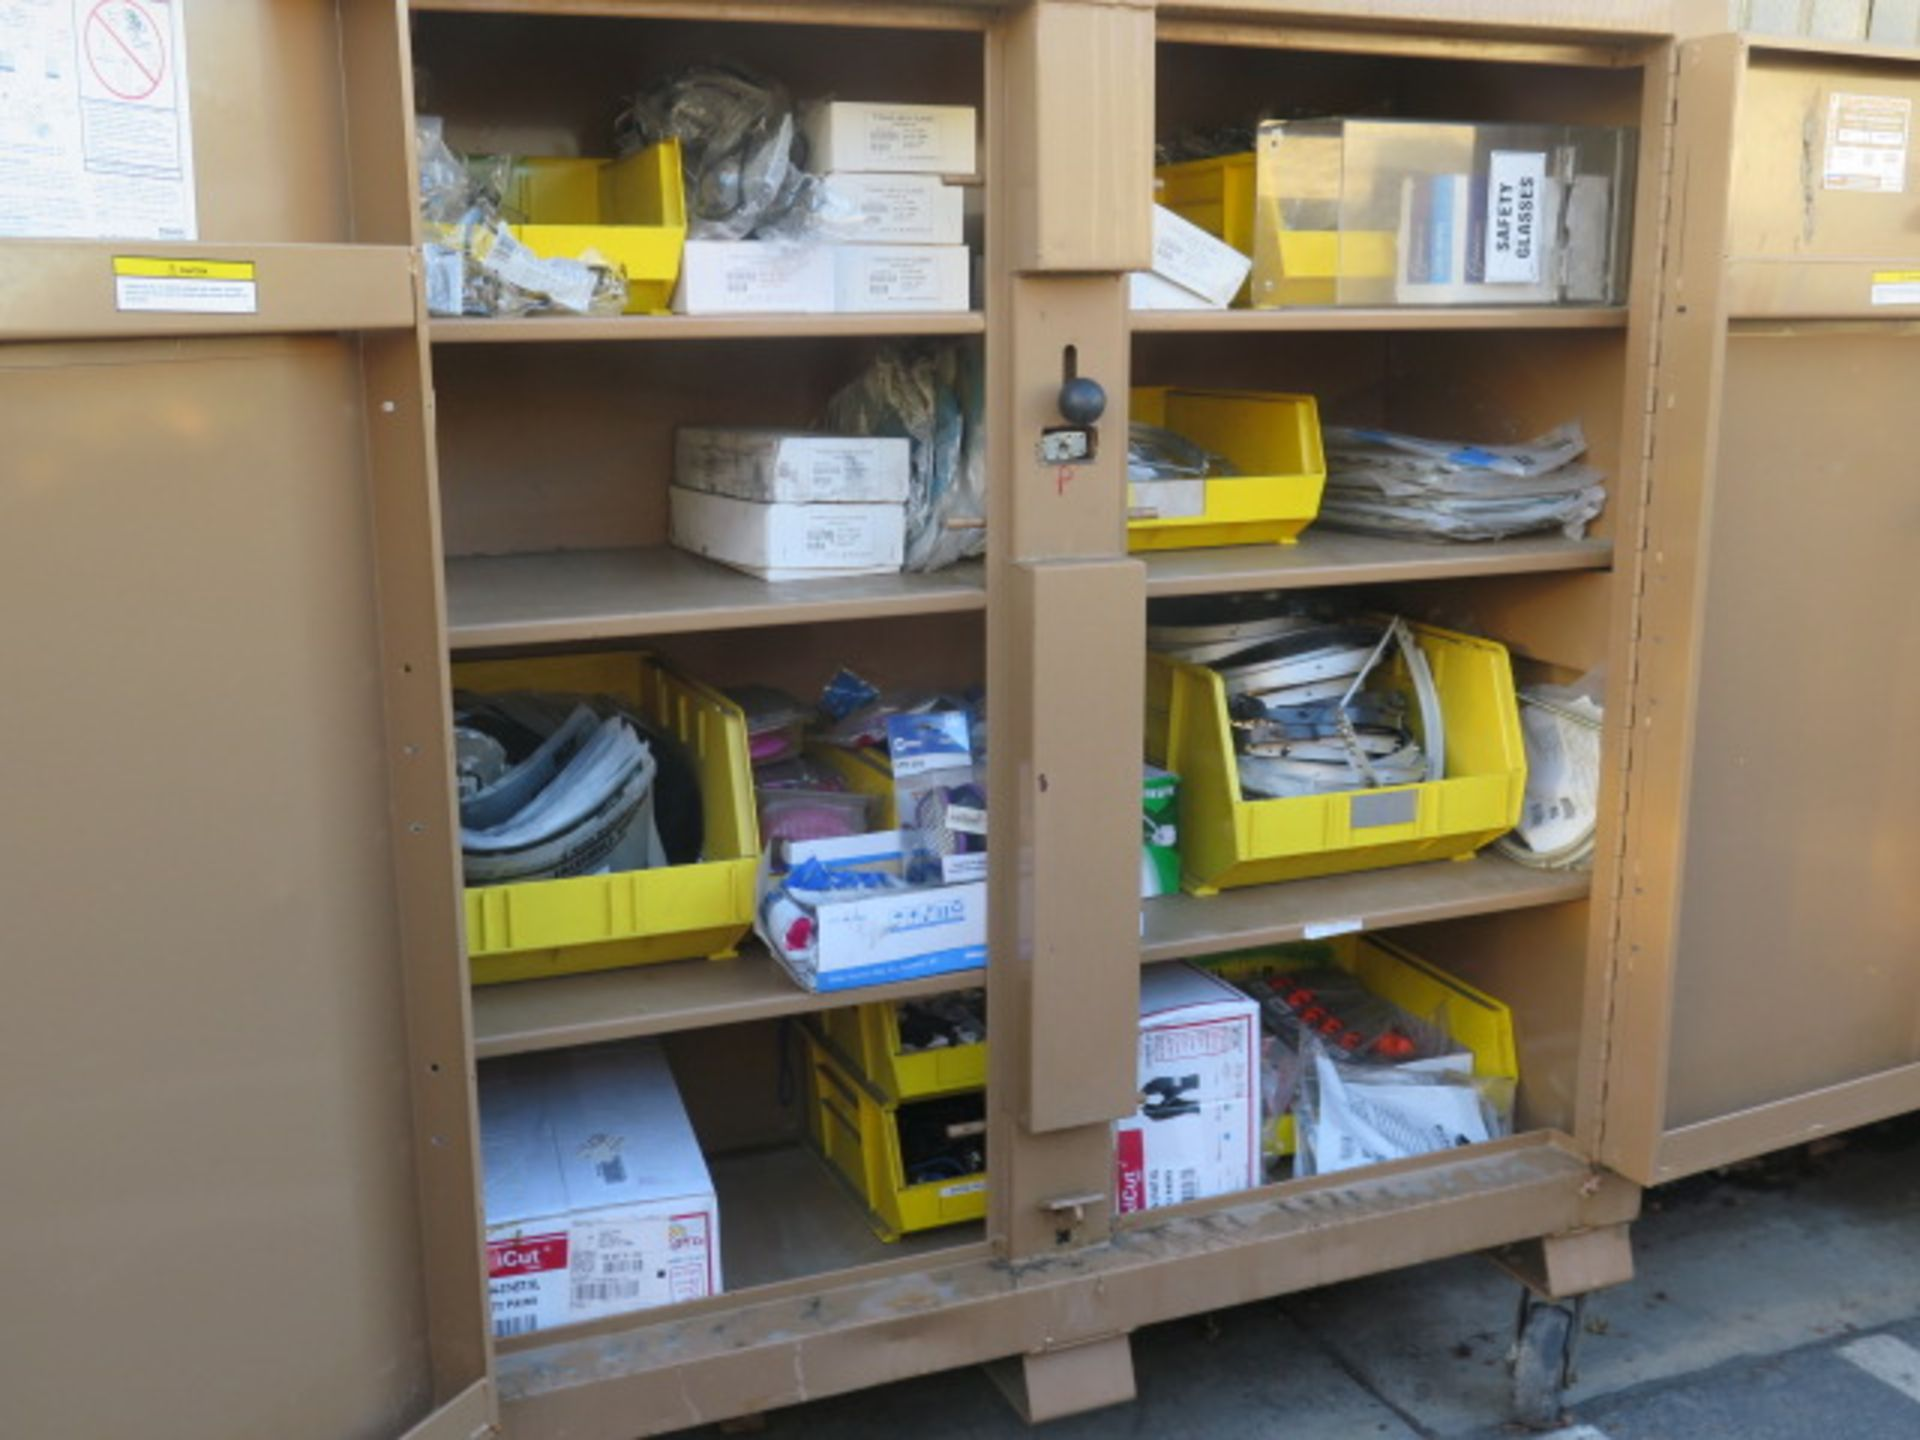 Knaack 109 Jobmaster Rolling Job Box w/ Safety Supplies (SOLD AS-IS - NO WARRANTY) - Image 4 of 19